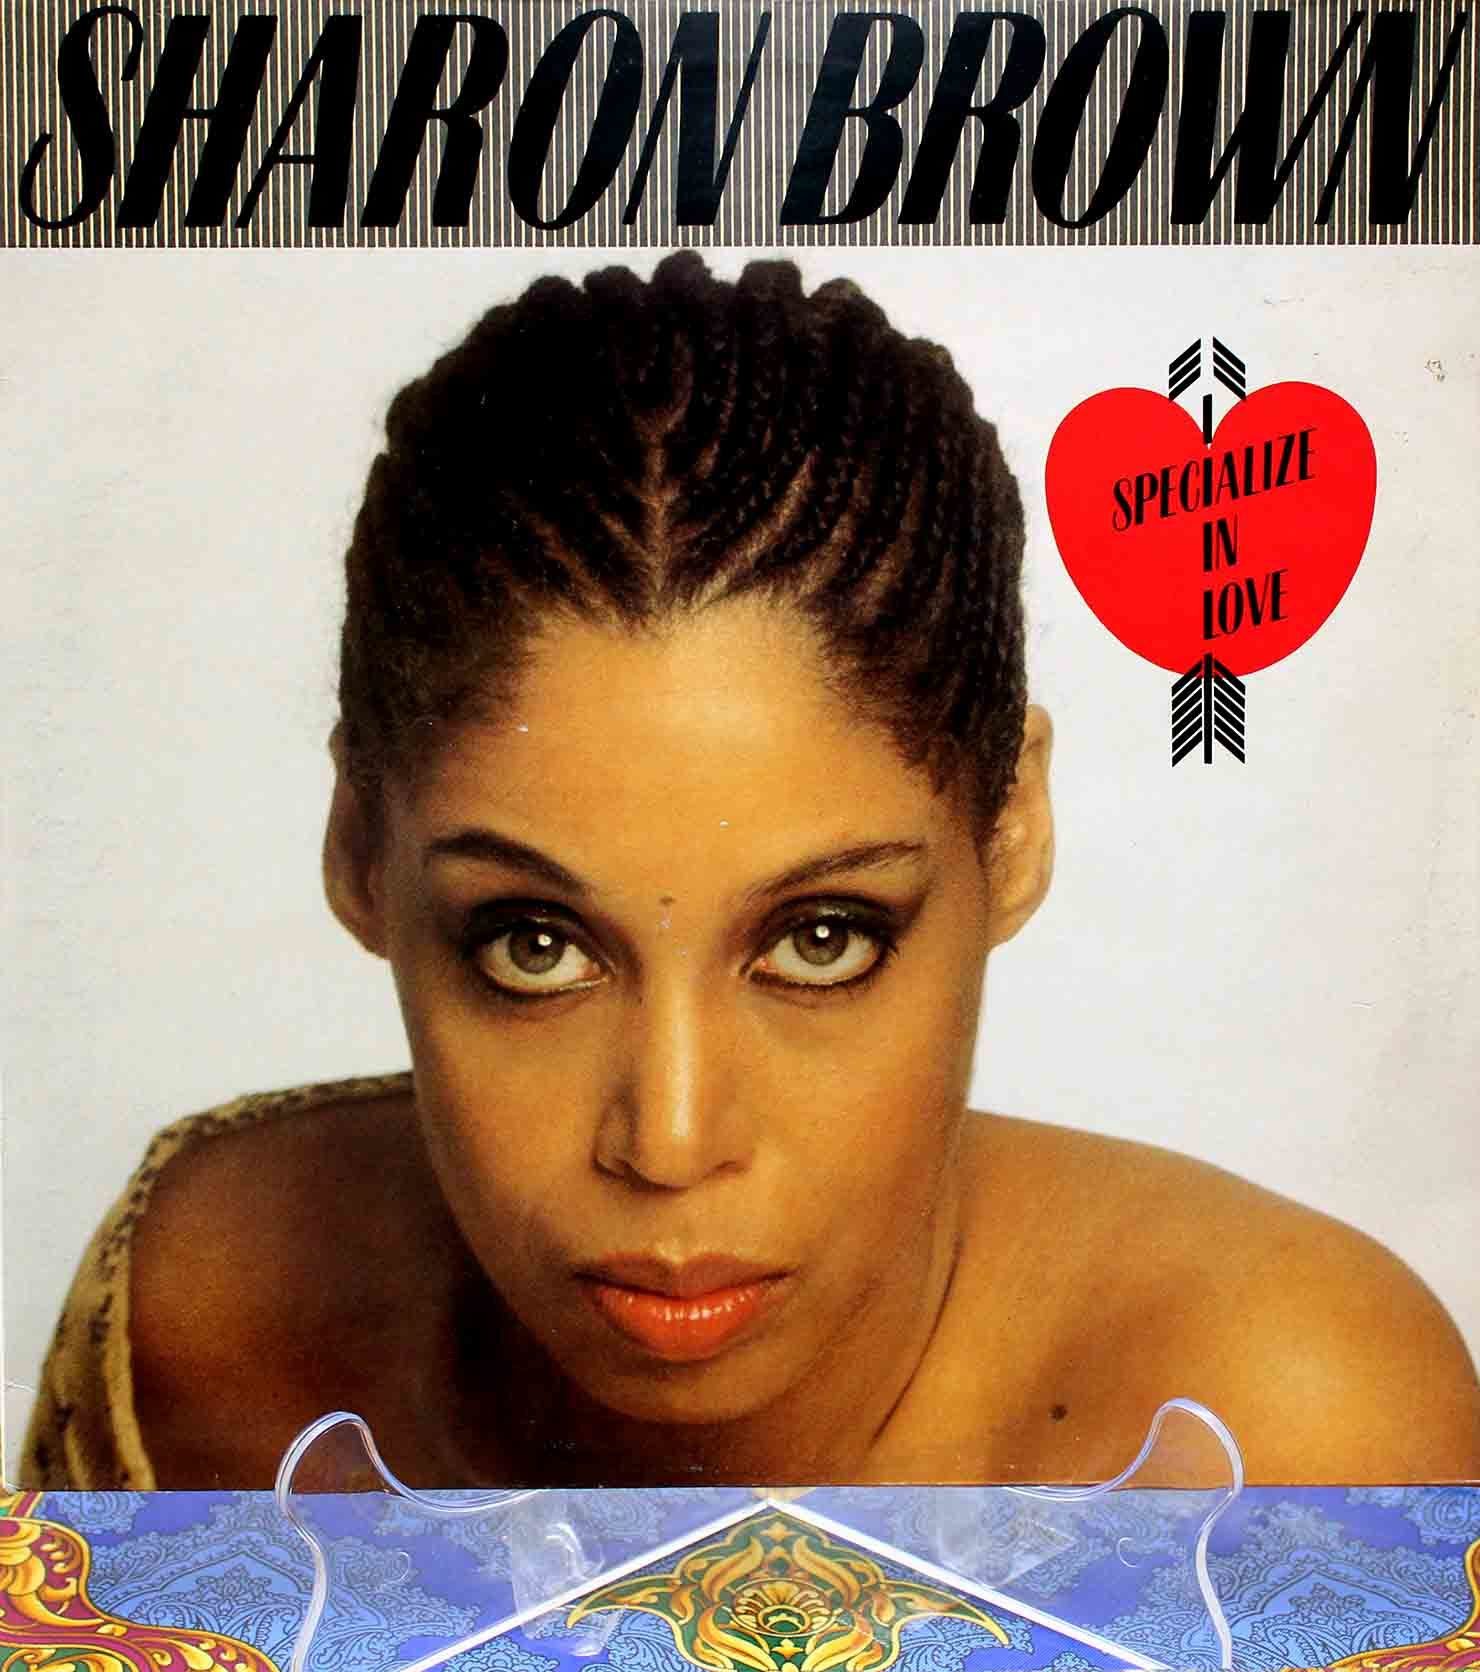 Sharon Brown – I Specialize In Love 01